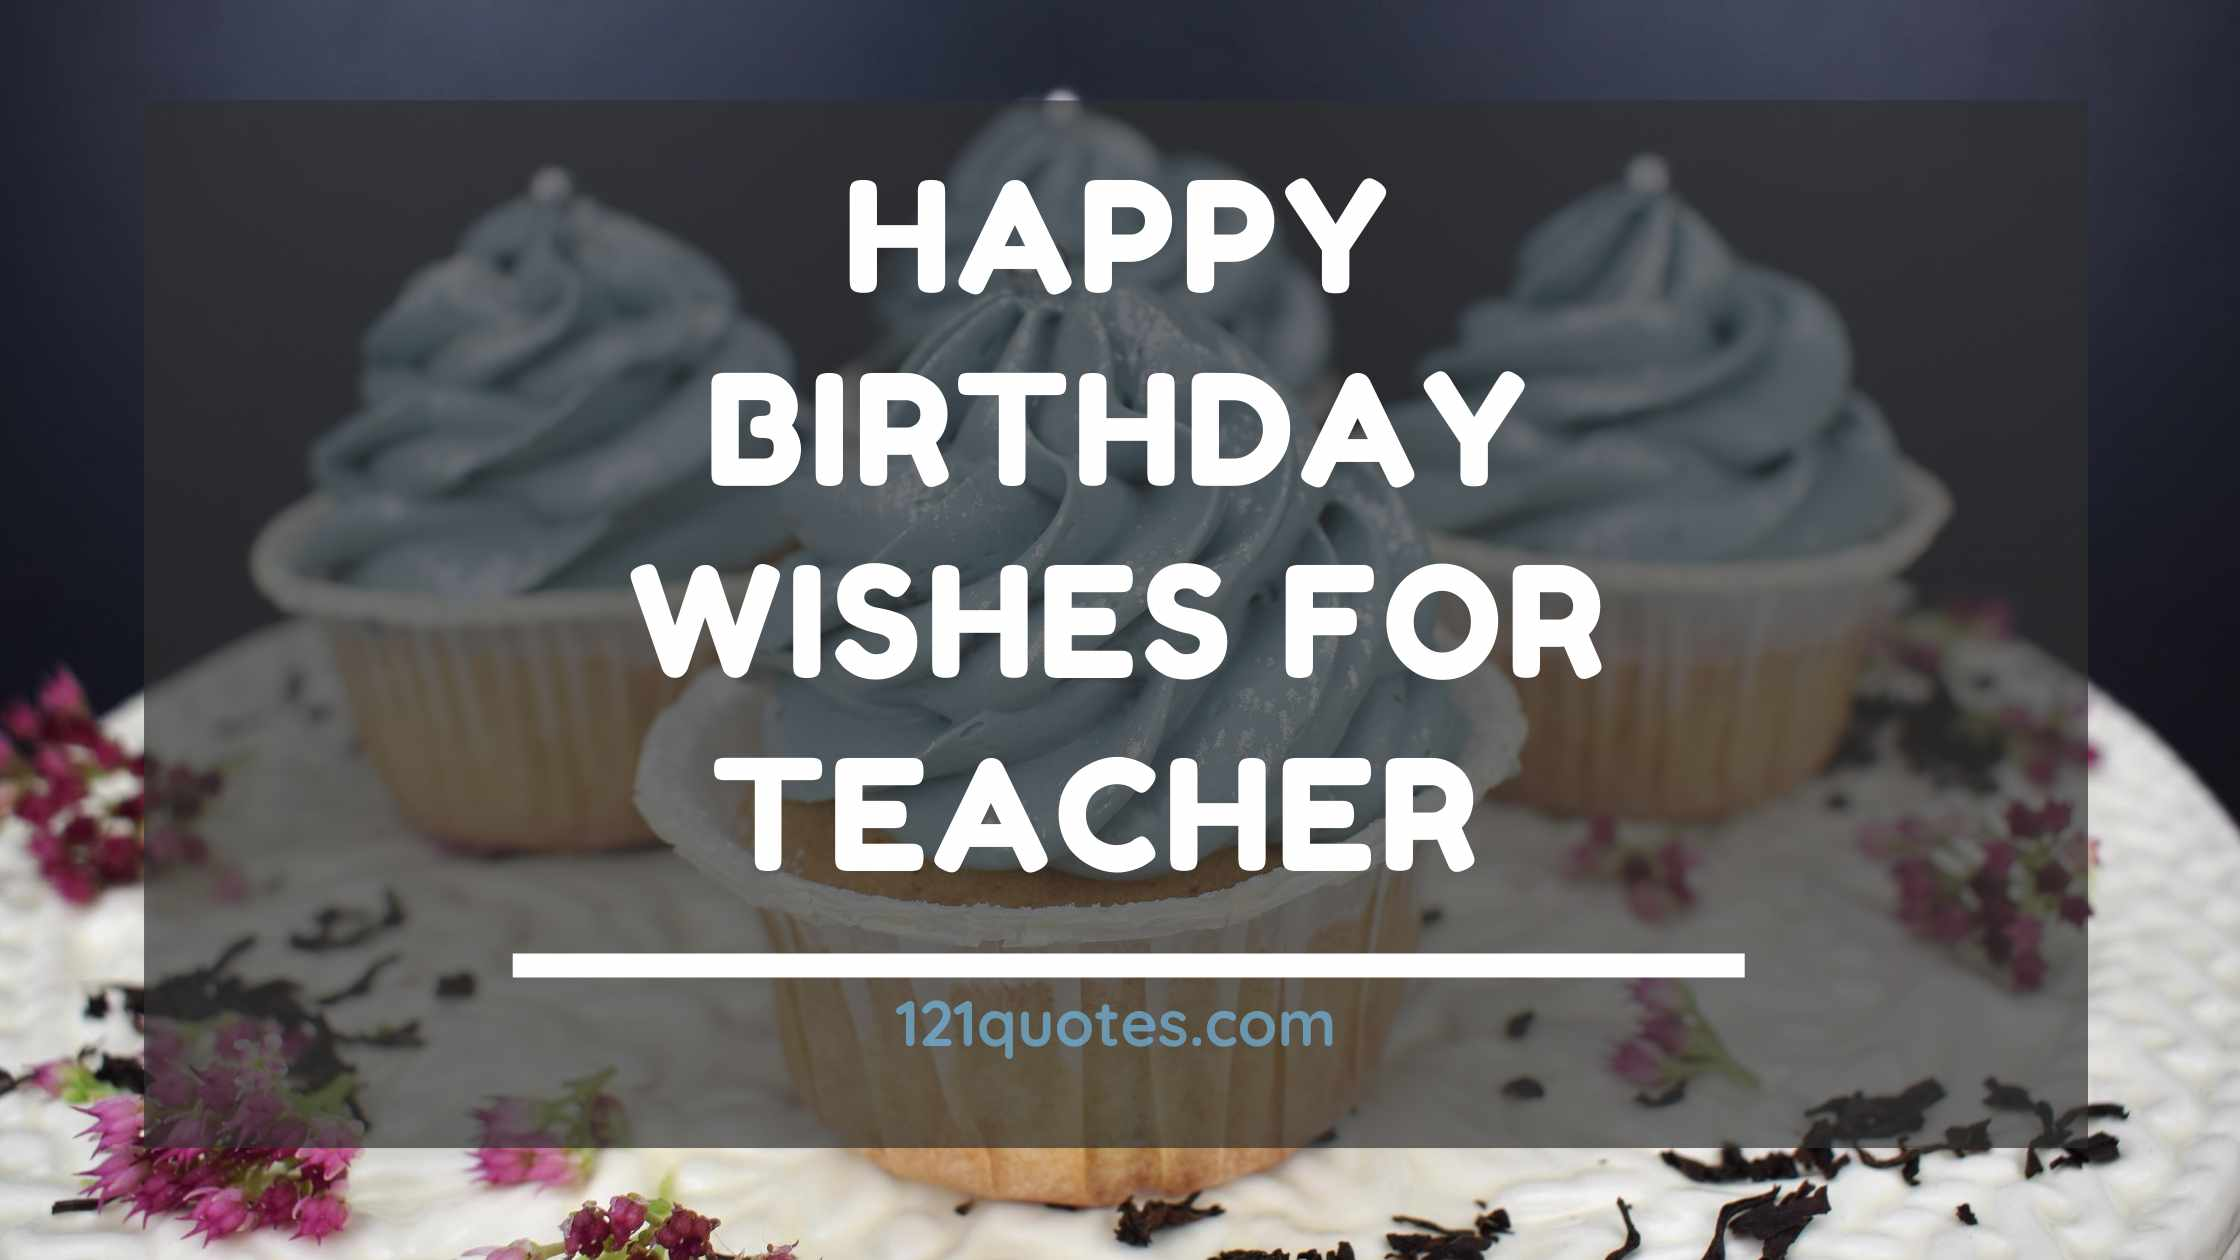 Beautiful Birthday Wishes for Teacher With Beautiful Images